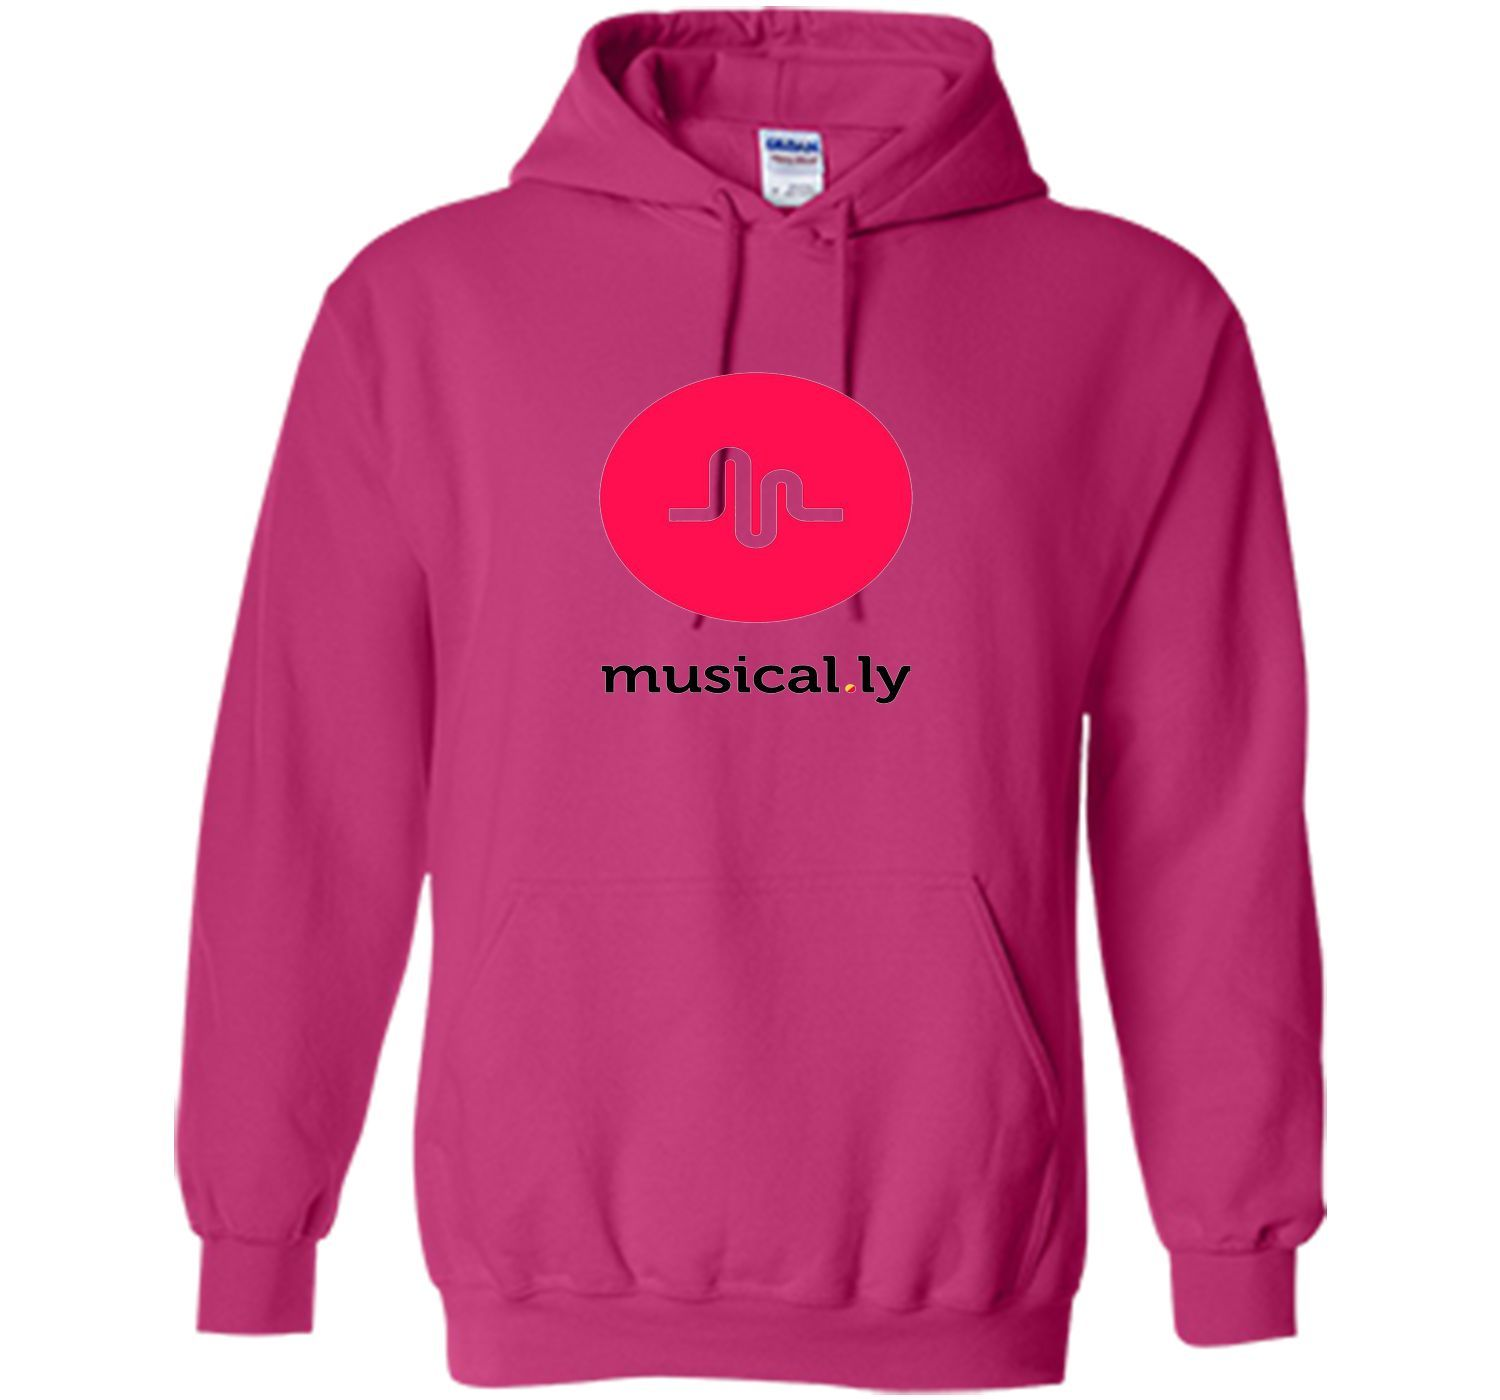 'musical.ly' T-Shirt (White - Fitted Cut)